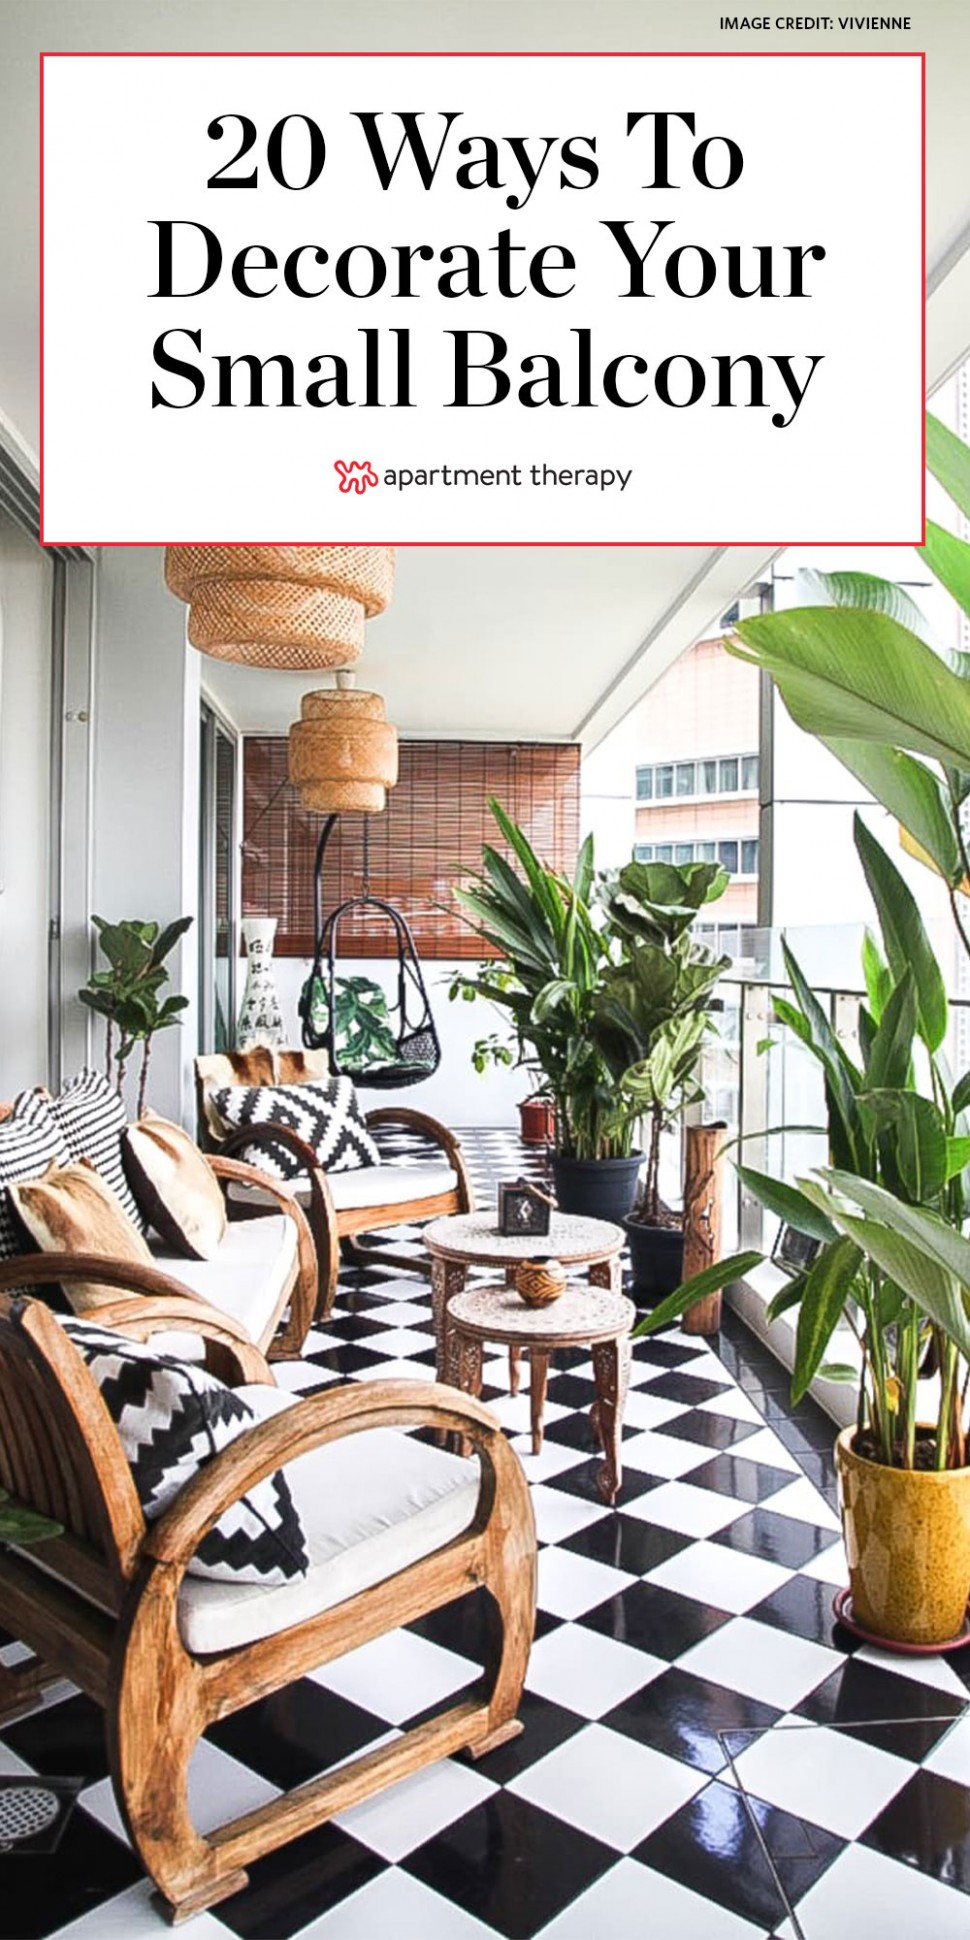 10 Fun Balcony Ideas - How to Decorate a Small Balcony  Apartment  - Balcony Ideas Apartment